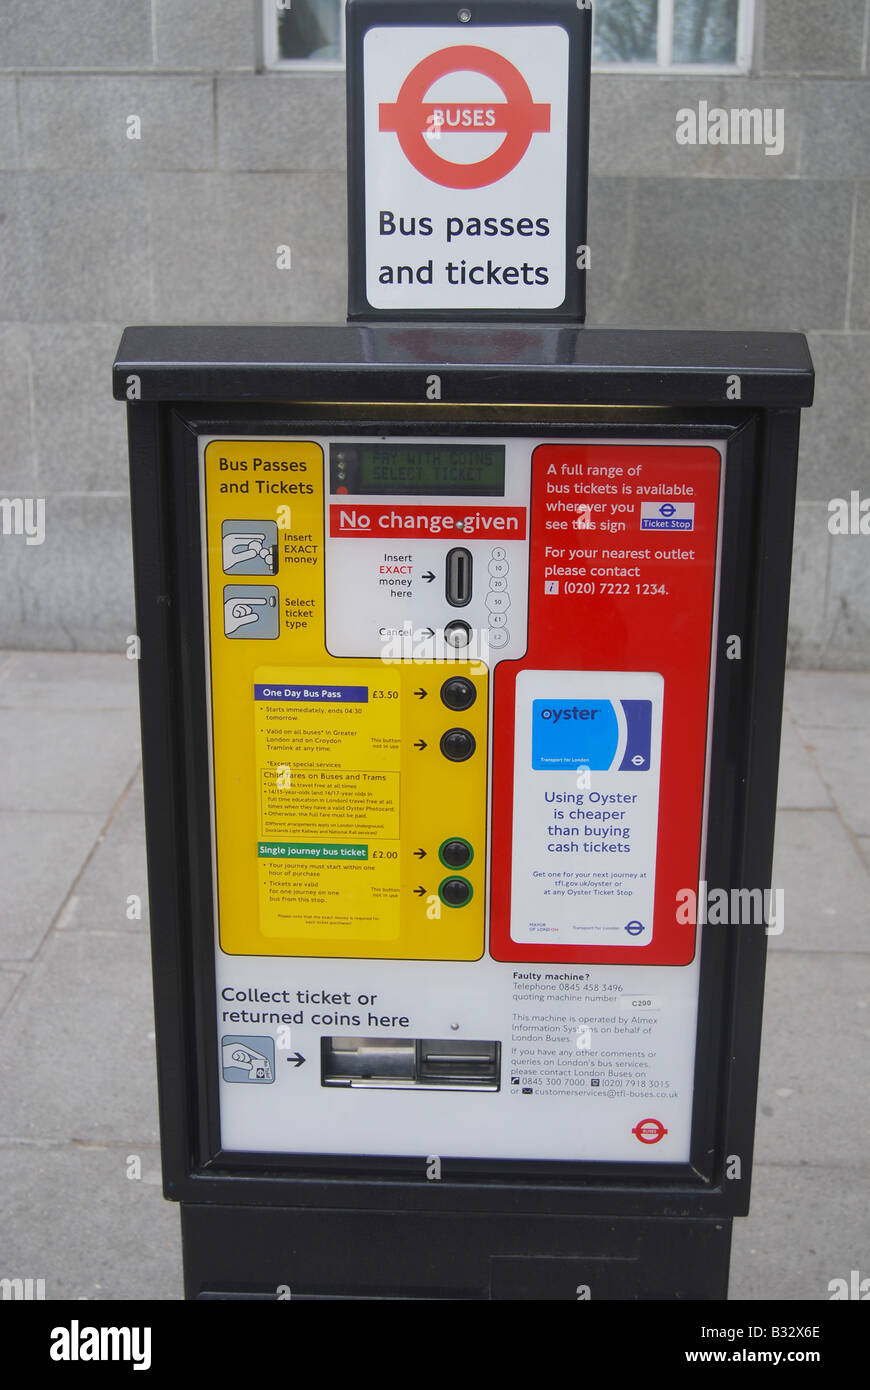 How To Buy An Oyster Card From A Machine